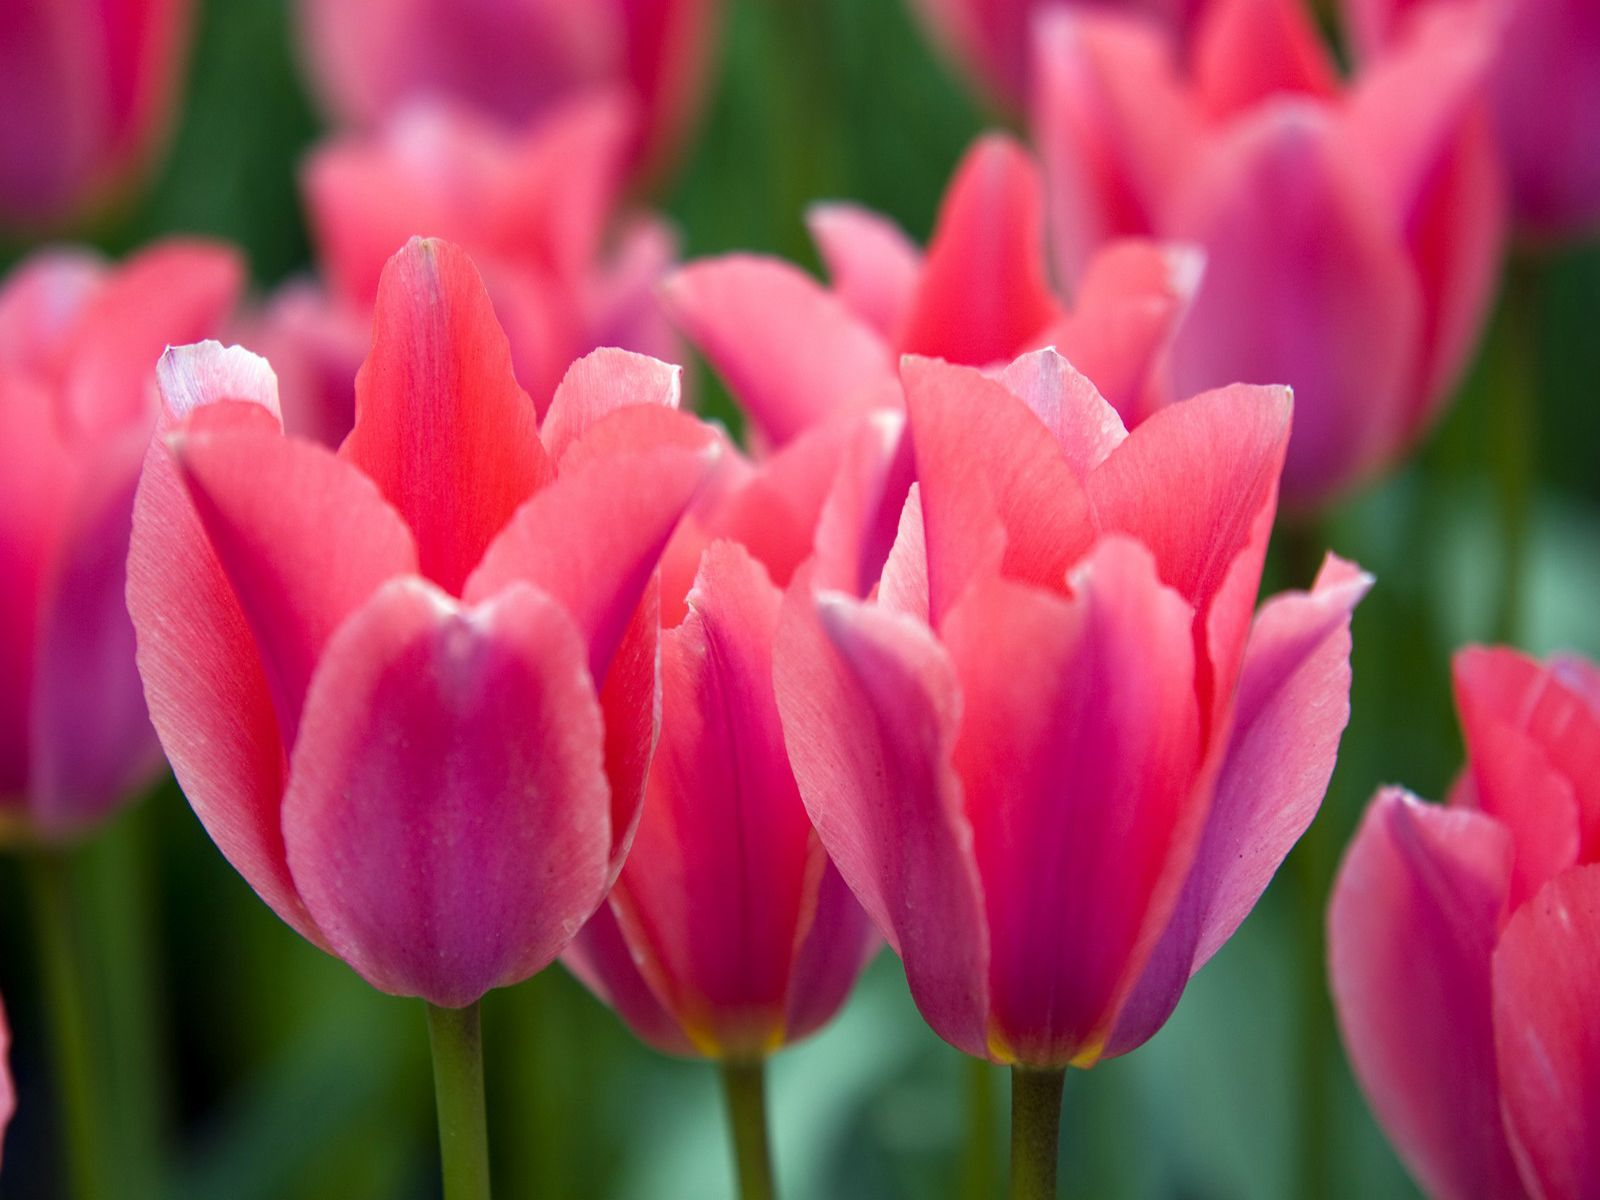 tulip pink tulip flower full hd desktop background image free image